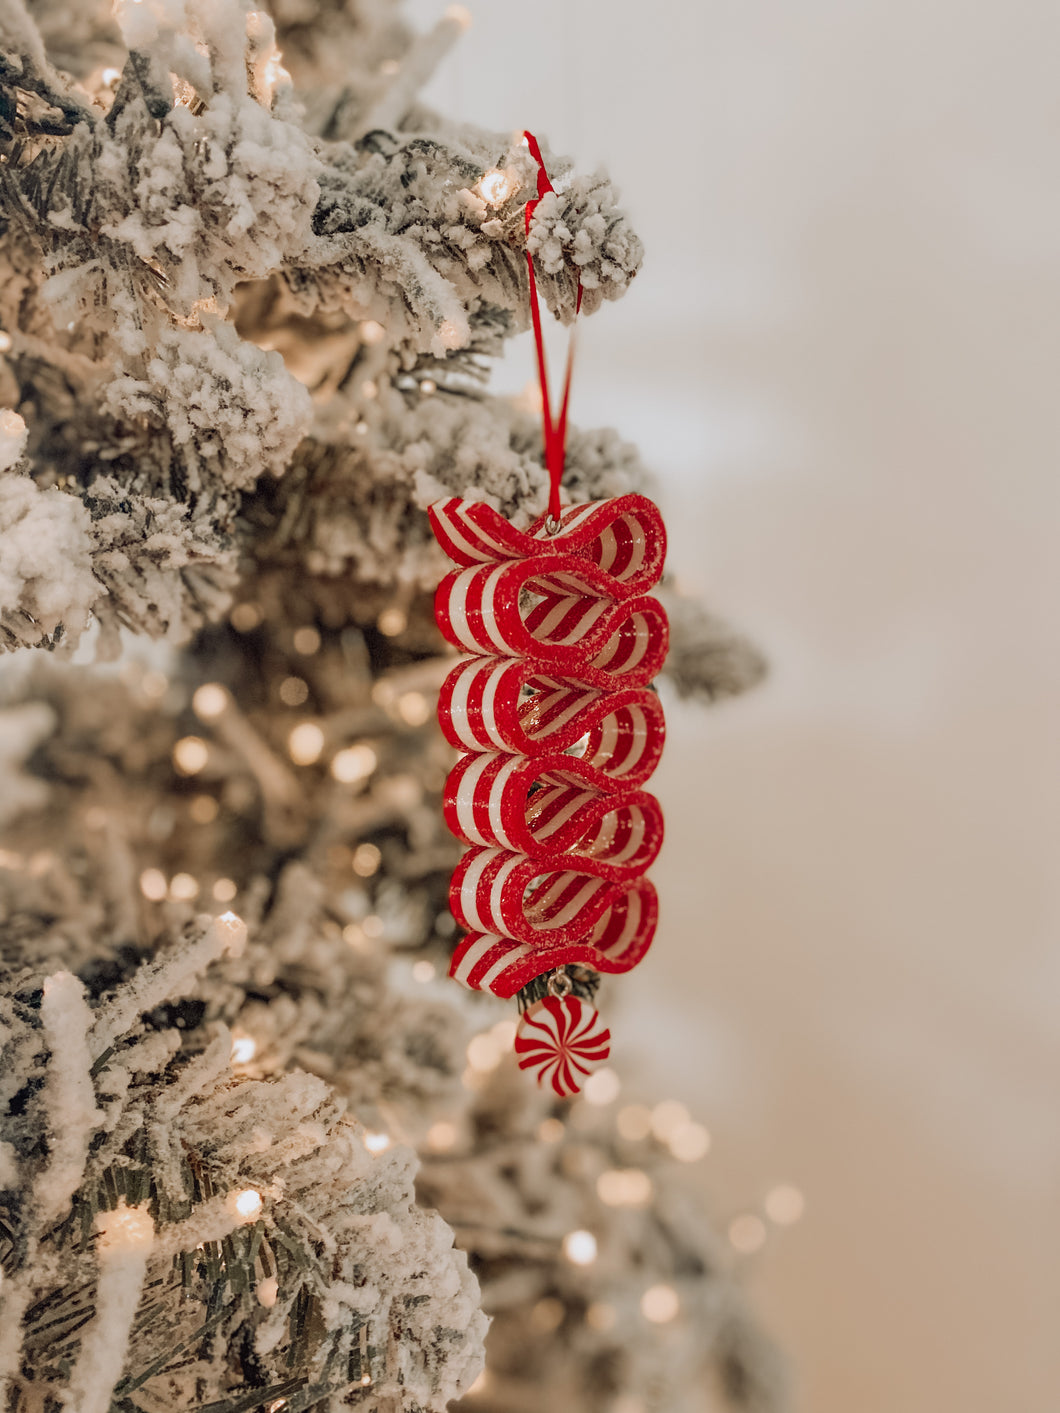 Sour Peppermint Candy Ornament